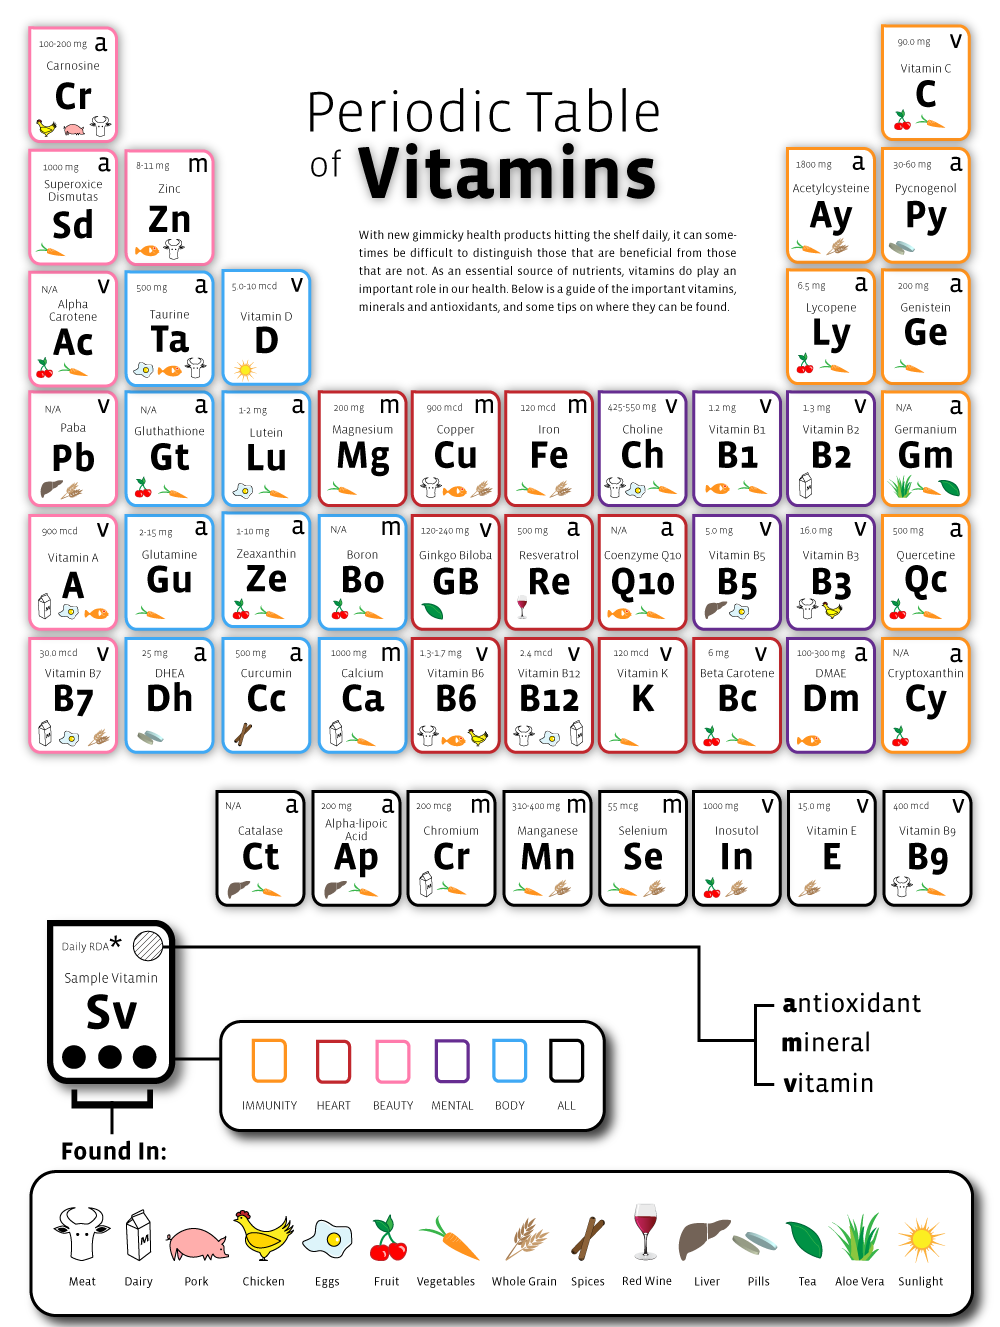 Periodic table for vitamins vitamin deficiency symptoms chart the periodic table of vitamins this is a great little guide of the important vitamins minerals and antioxidants and some tips on where they can be found gamestrikefo Choice Image